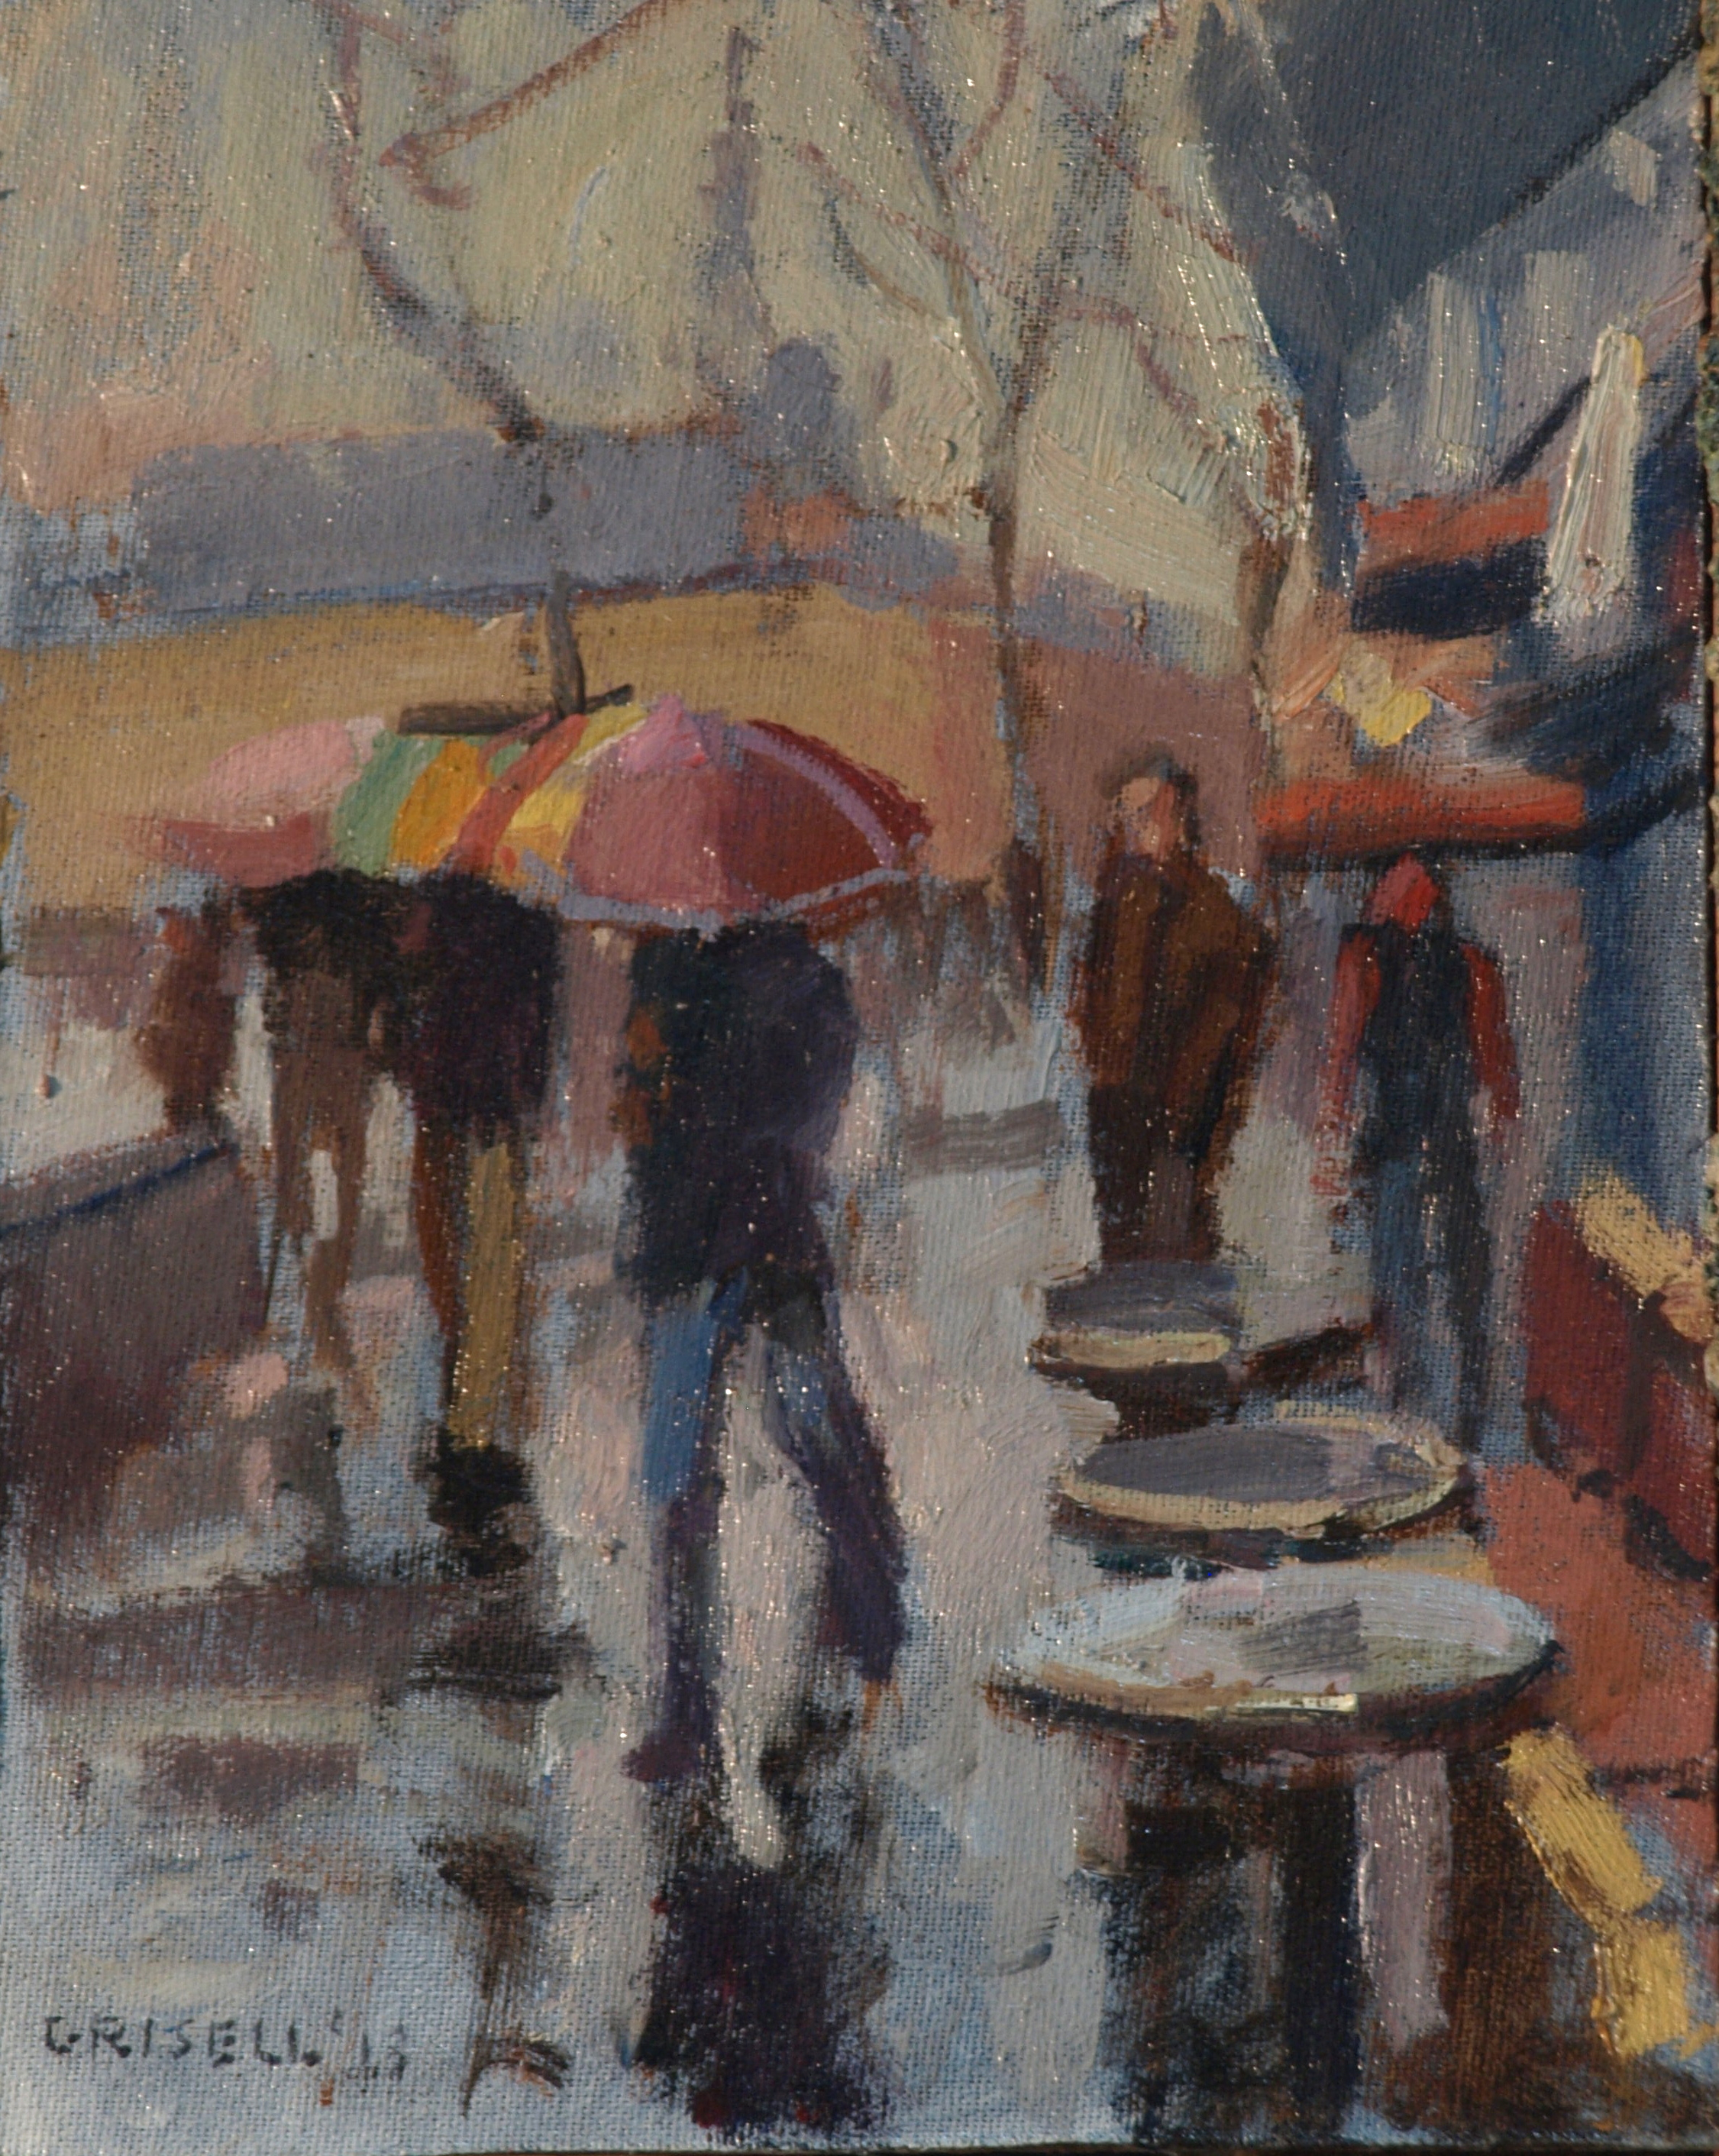 Umbrellas -- France, Oil on Canvas on Panel, 10 x 8 Inches, by Susan Grisell, $150